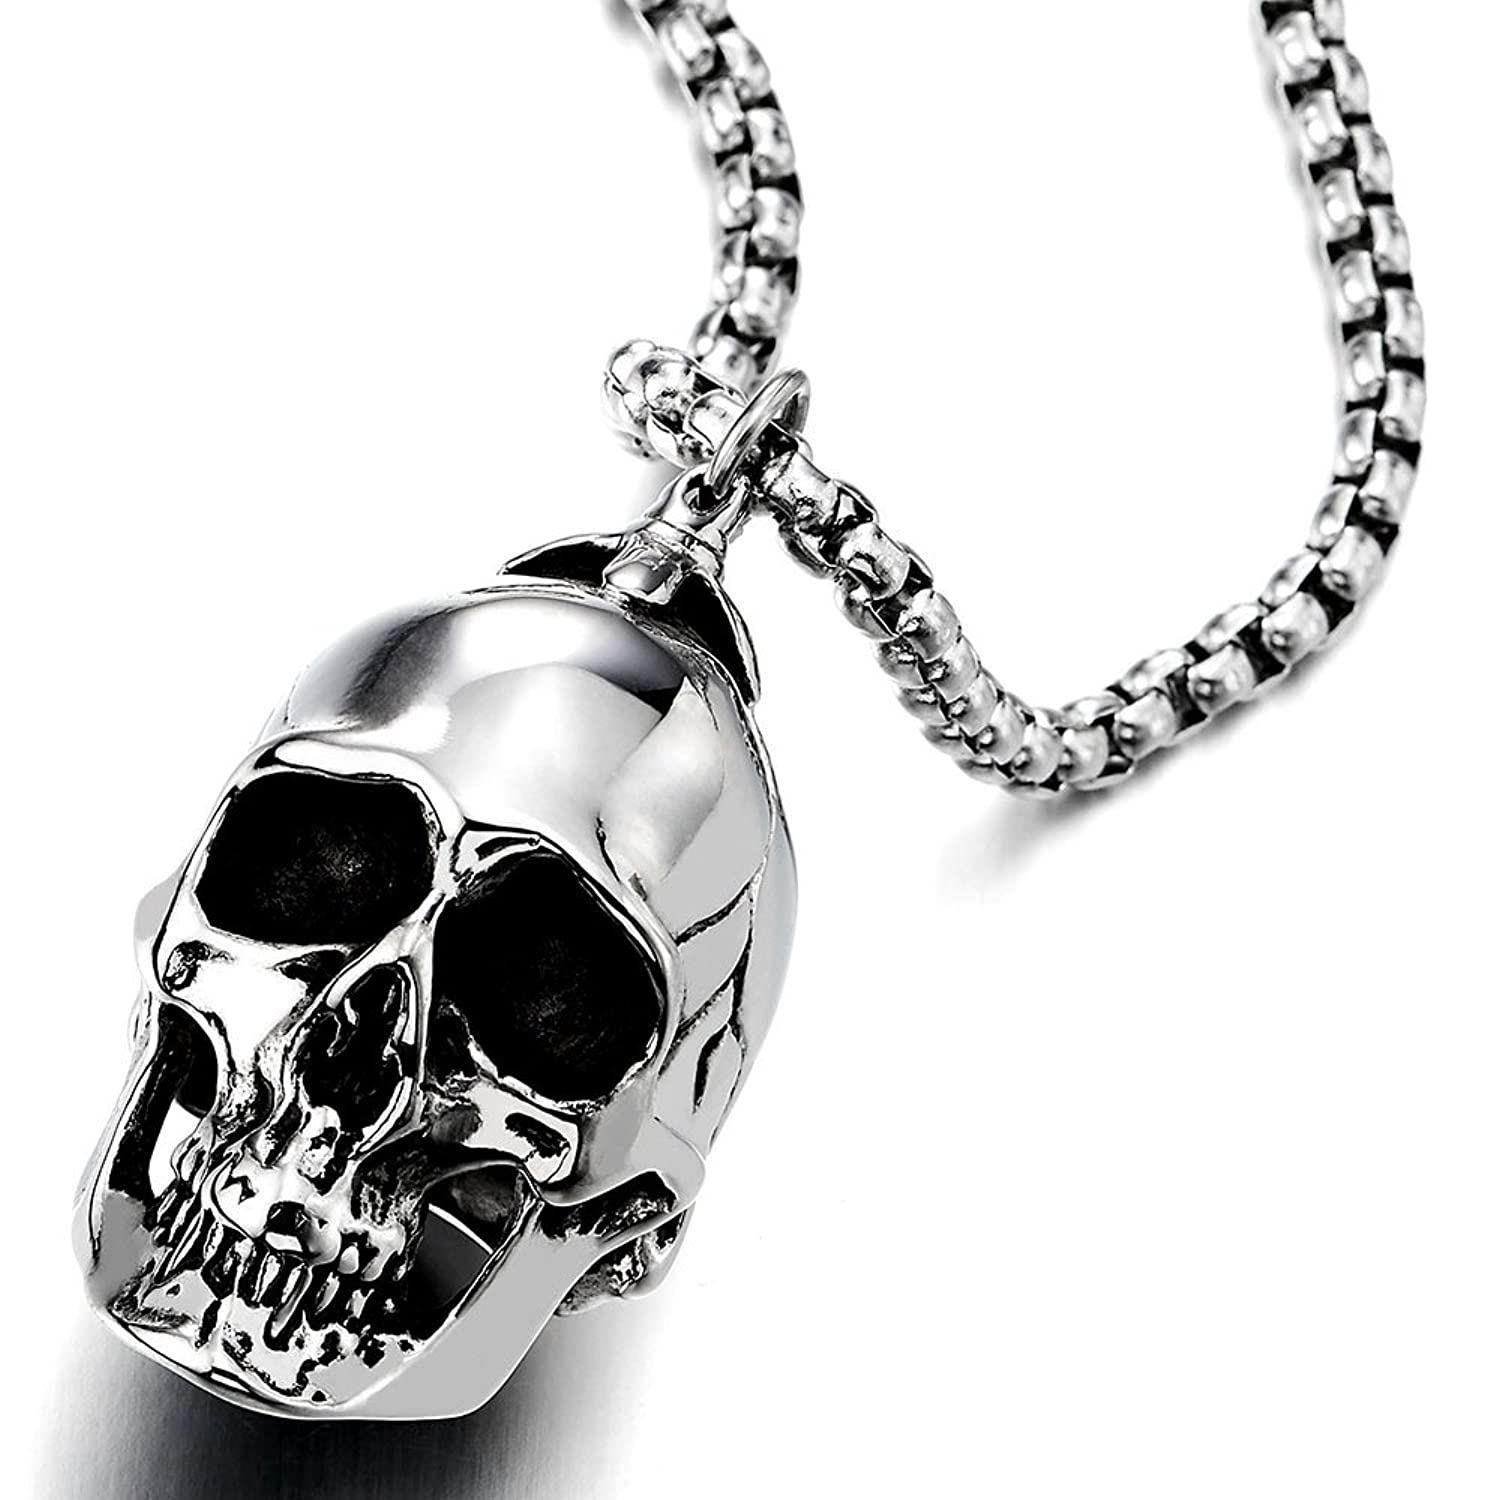 Men's Stainless Steel Skull Pendant Chain Necklace